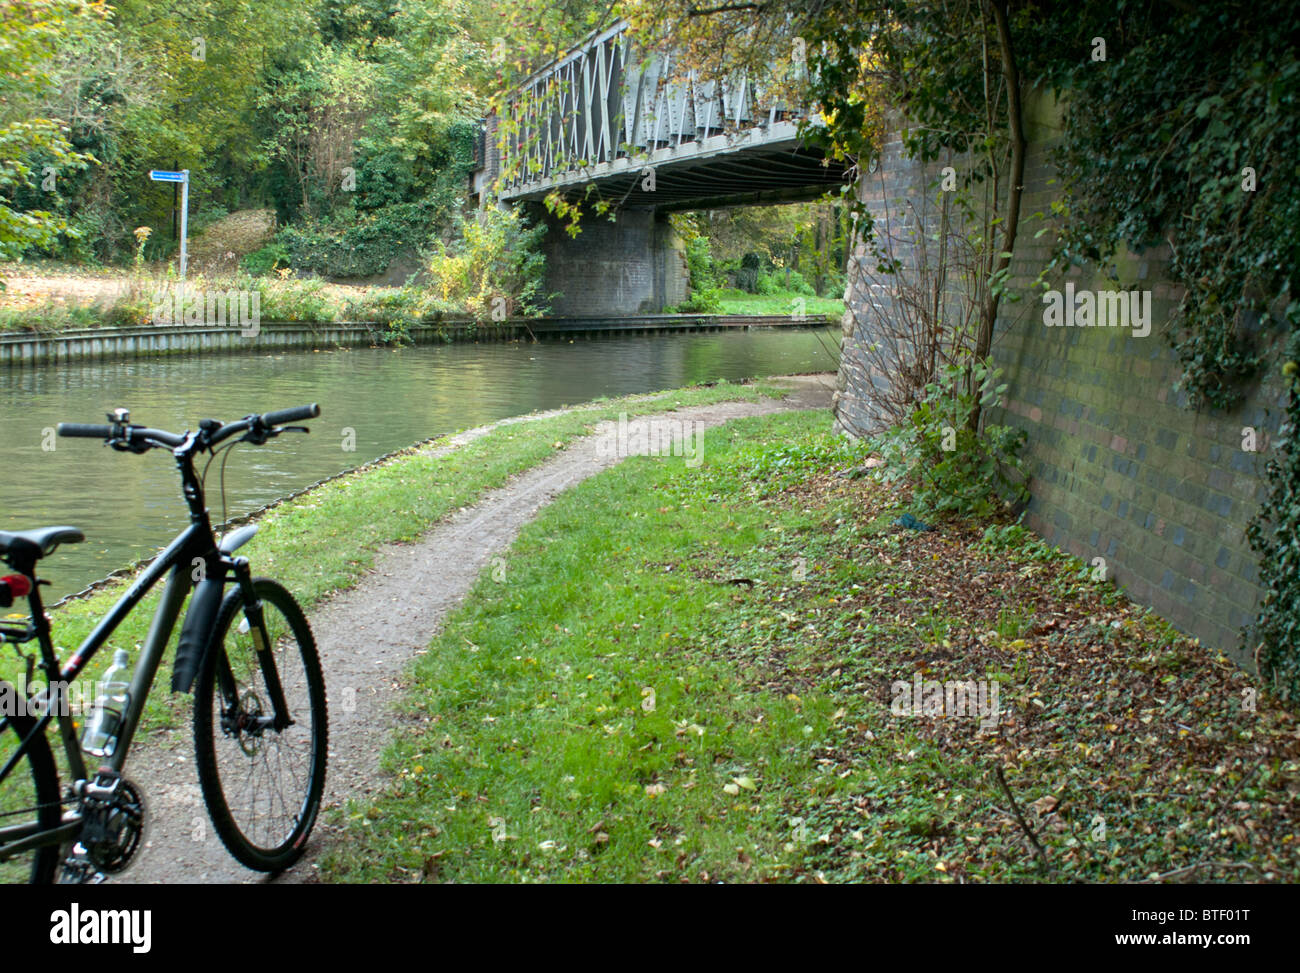 Bicycle on Canal Path next to  Water - Stock Image